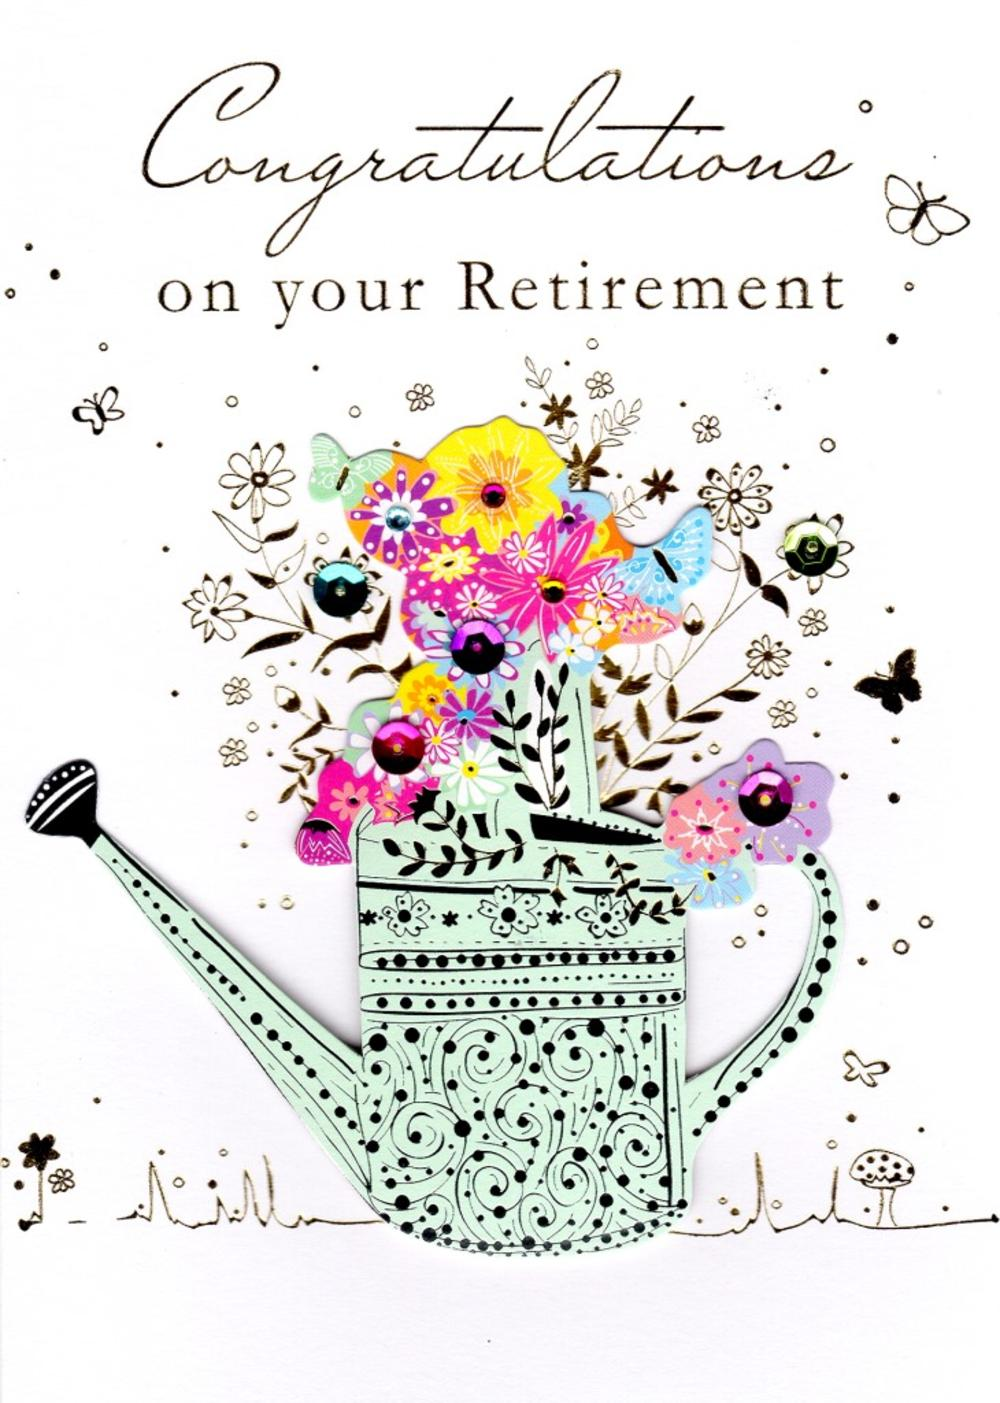 Congratulations On Your Retirement Greeting Card | Cards ...